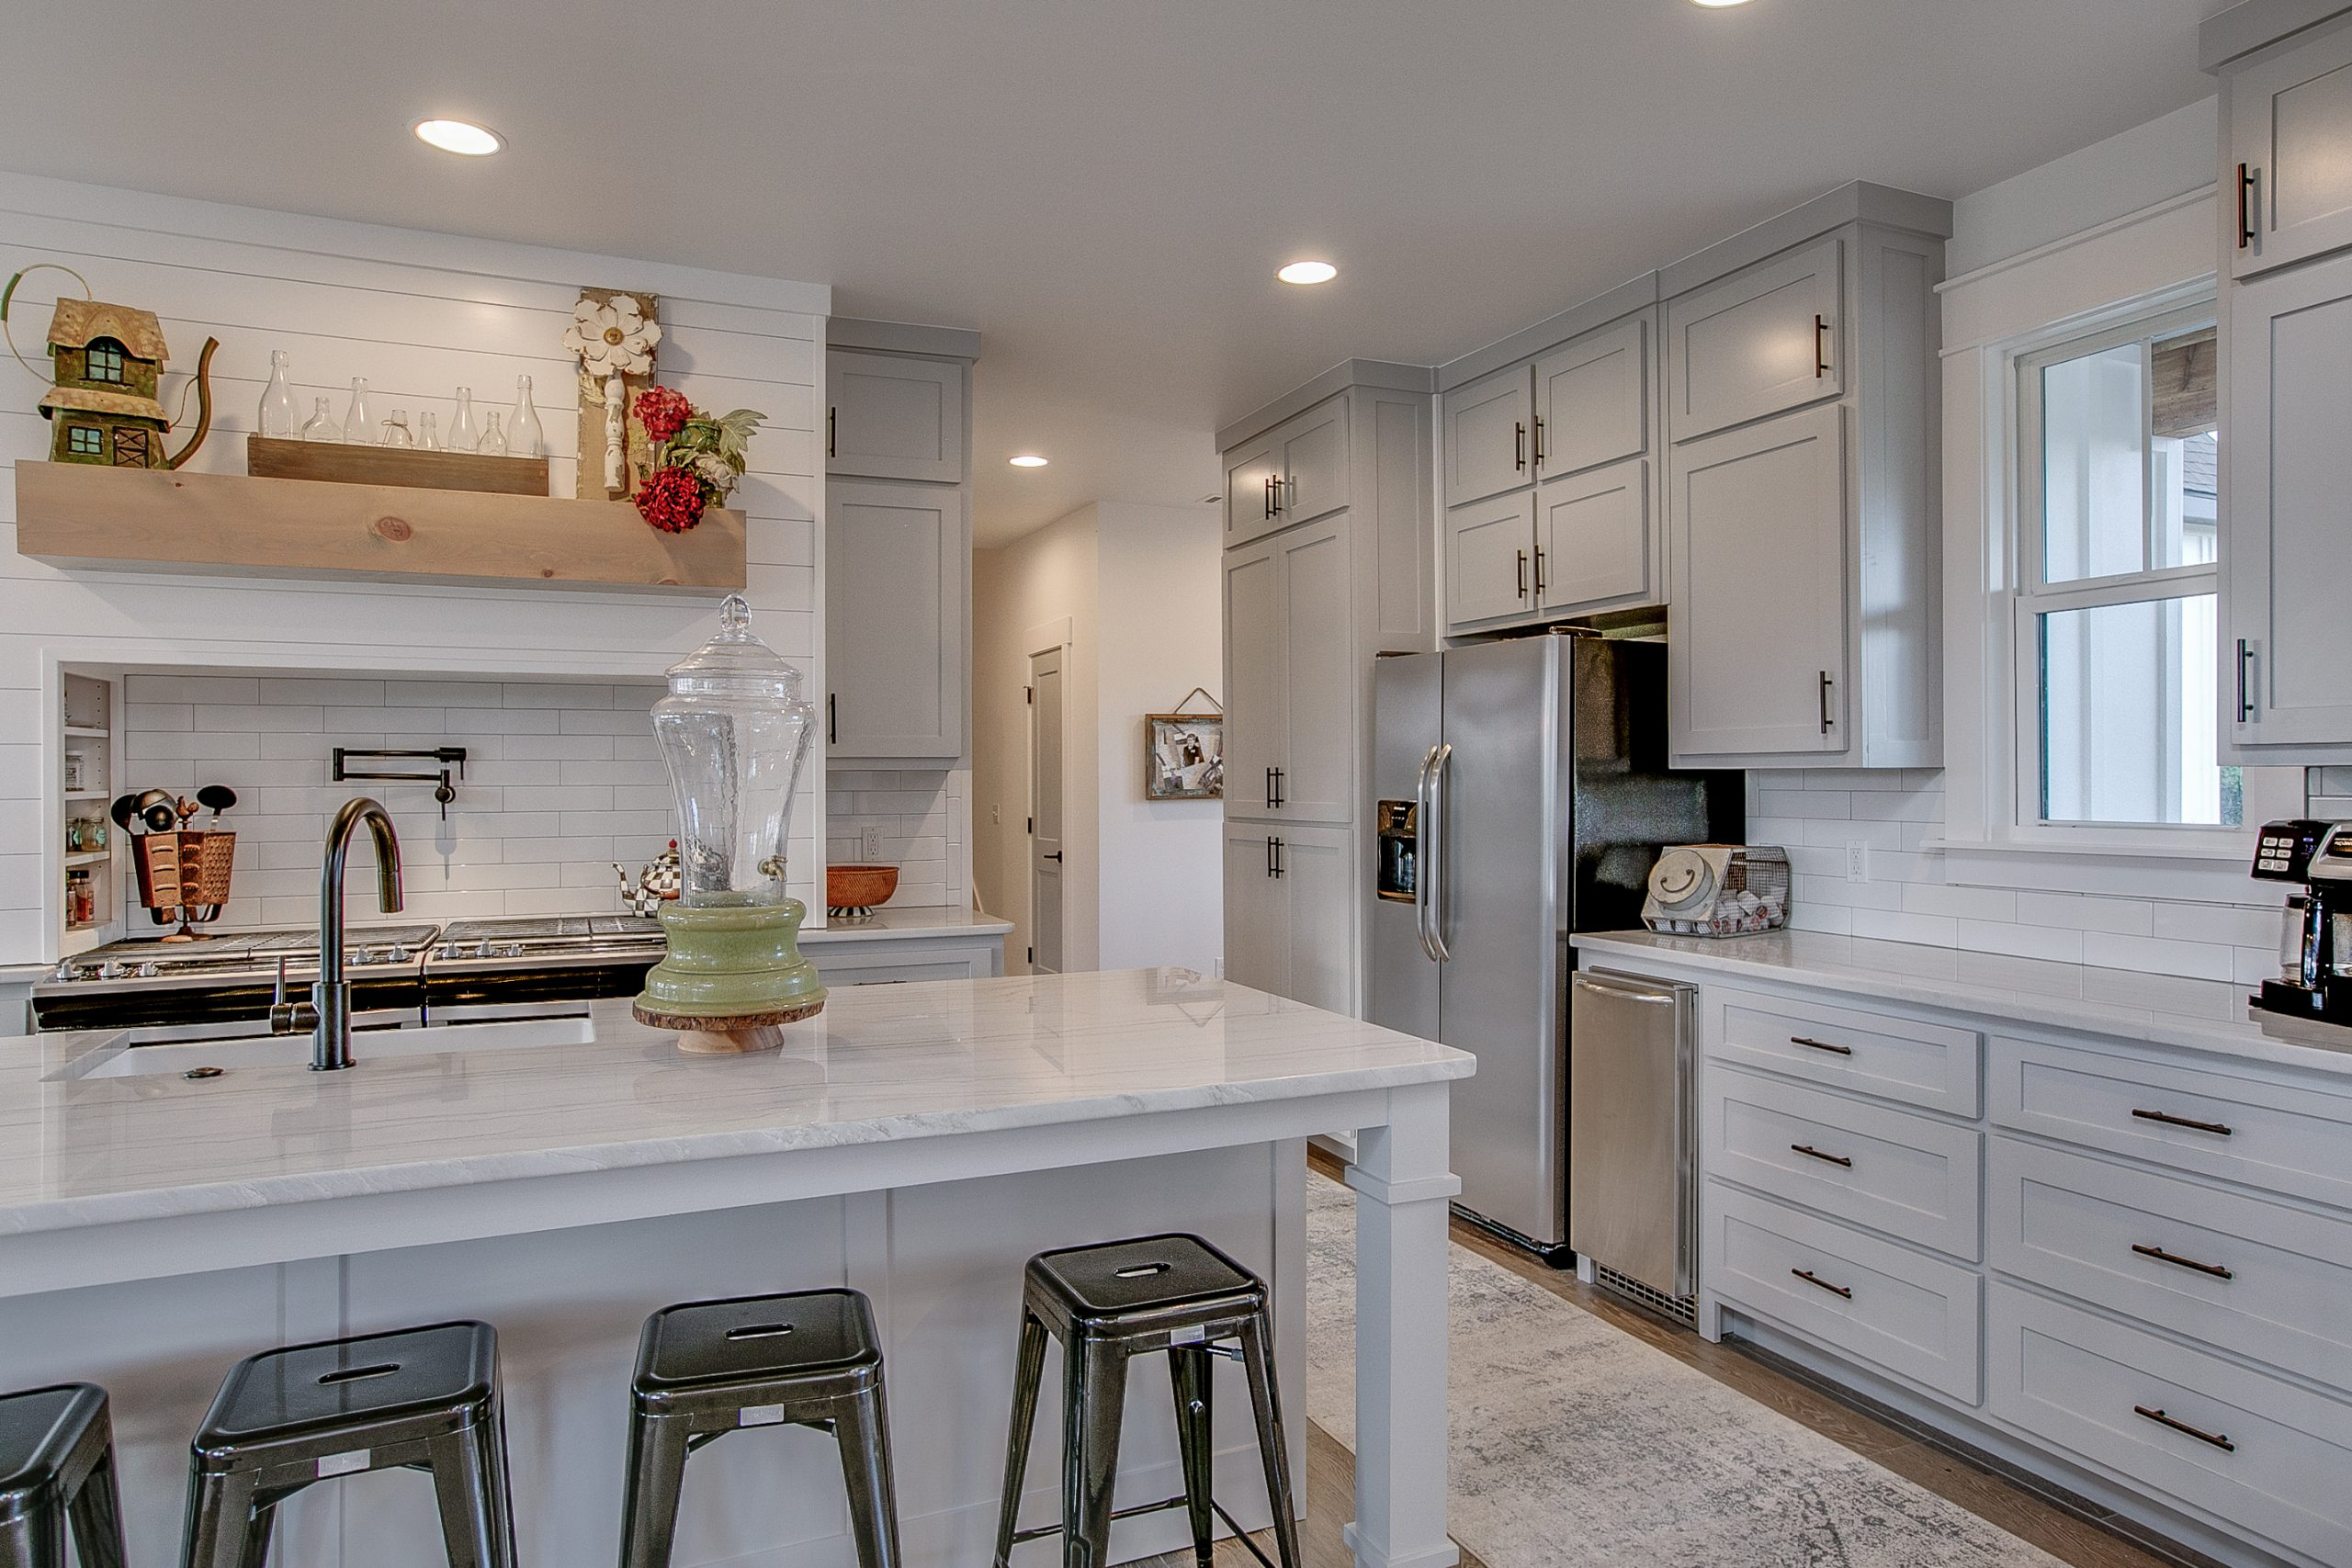 Custom Shaker Cabinets Island Heights NJ, Buy custom kitchen cabinets factory direct in Island Heights NJ, Buy custom shaker cabinets factory direct in Island Heights NJ